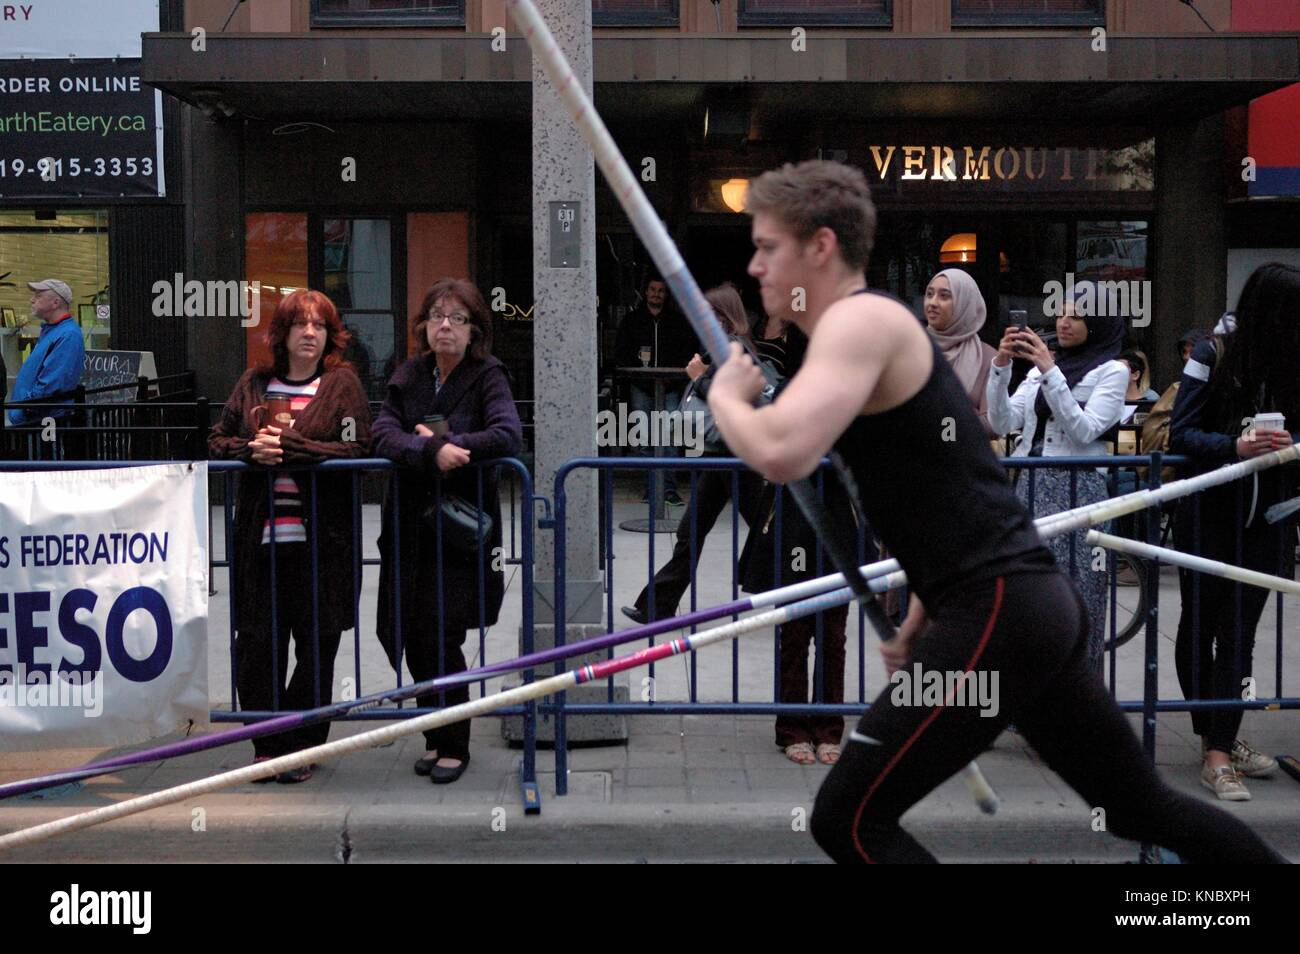 Two women watch as a male pole vaulter starts his jump attempt. The downtown event is sponsored by the local university. - Stock Image